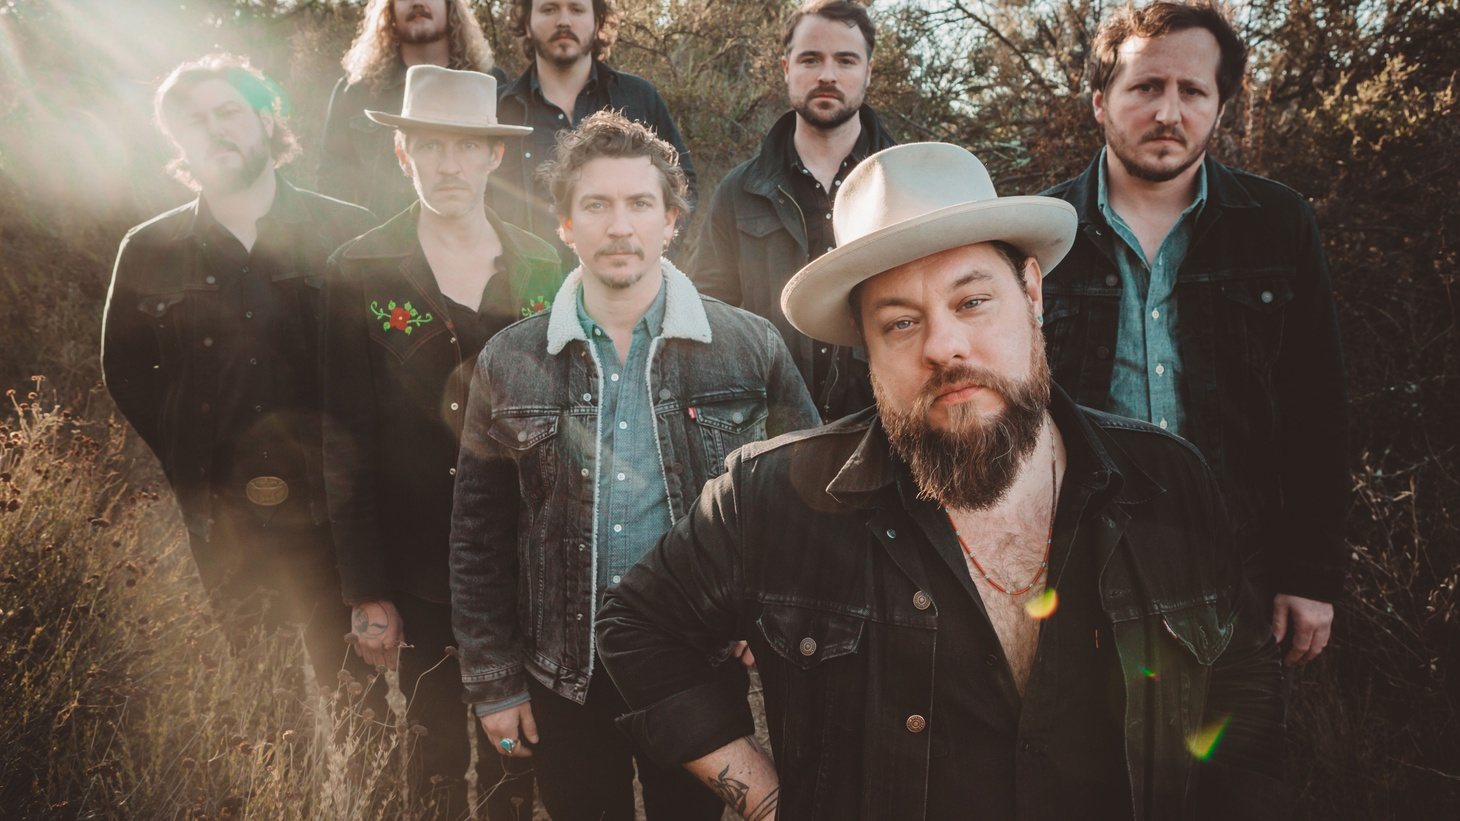 2017 was a break out year for the Denver-based propulsive rock band  Nathaniel Rateliff & The Night Sweats ; primarily due to their lauded debut and a rash of performances across the globe.